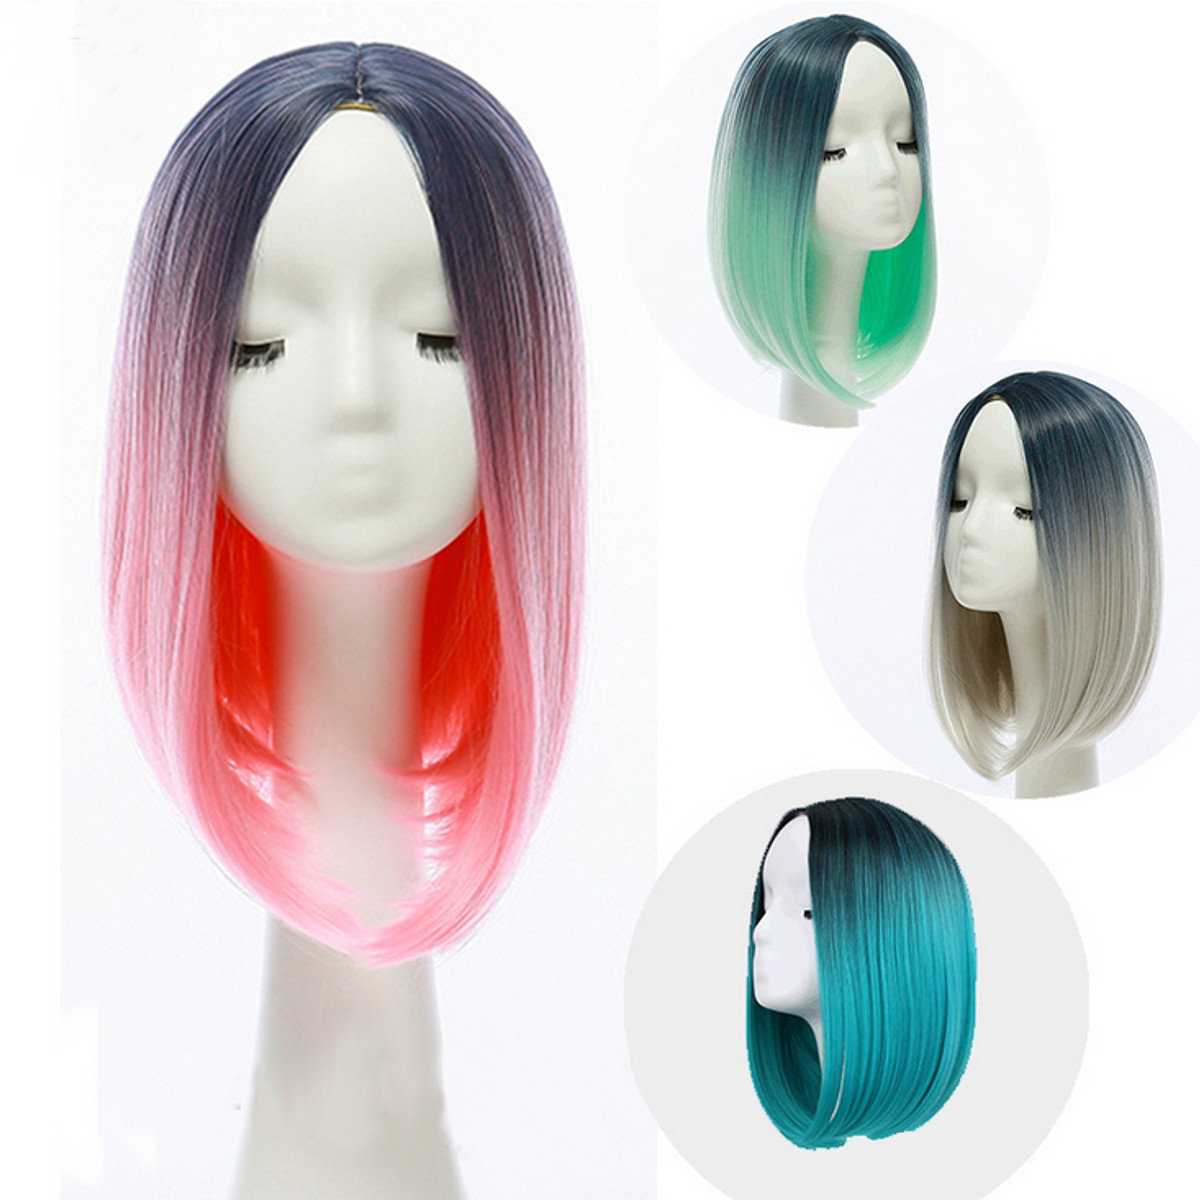 36cm Gradient Hair Straight Bob Wigs Heat Resistant Synthetic 4 Colors